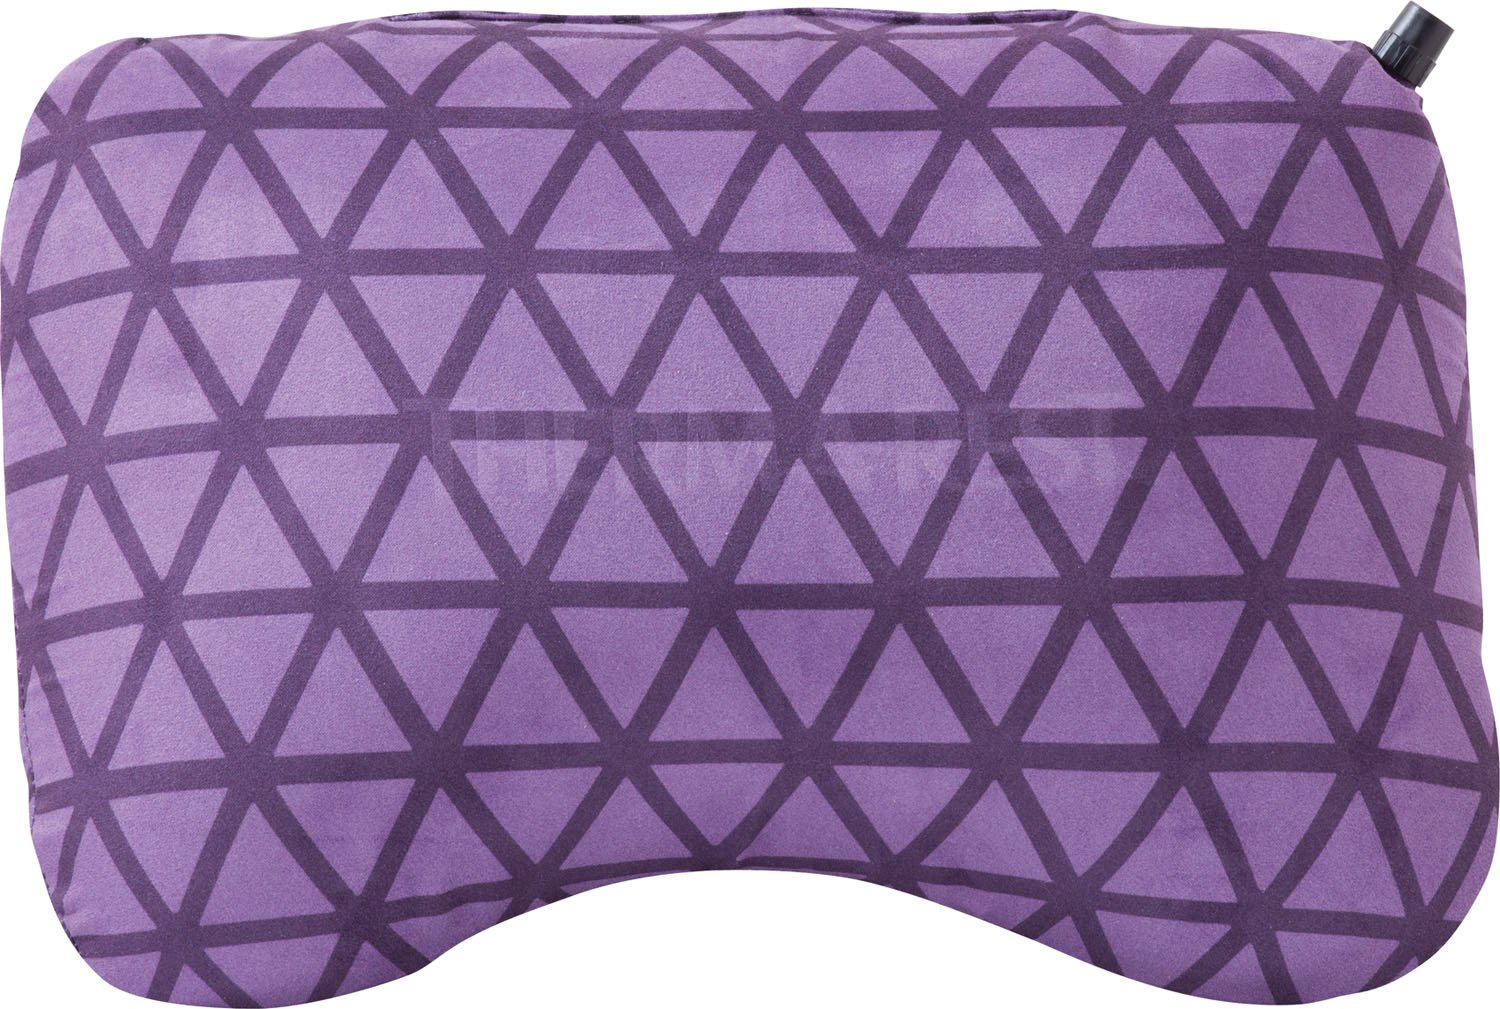 Amethyst ThermaRest AirHead Inflatable Foam Travel Pillow